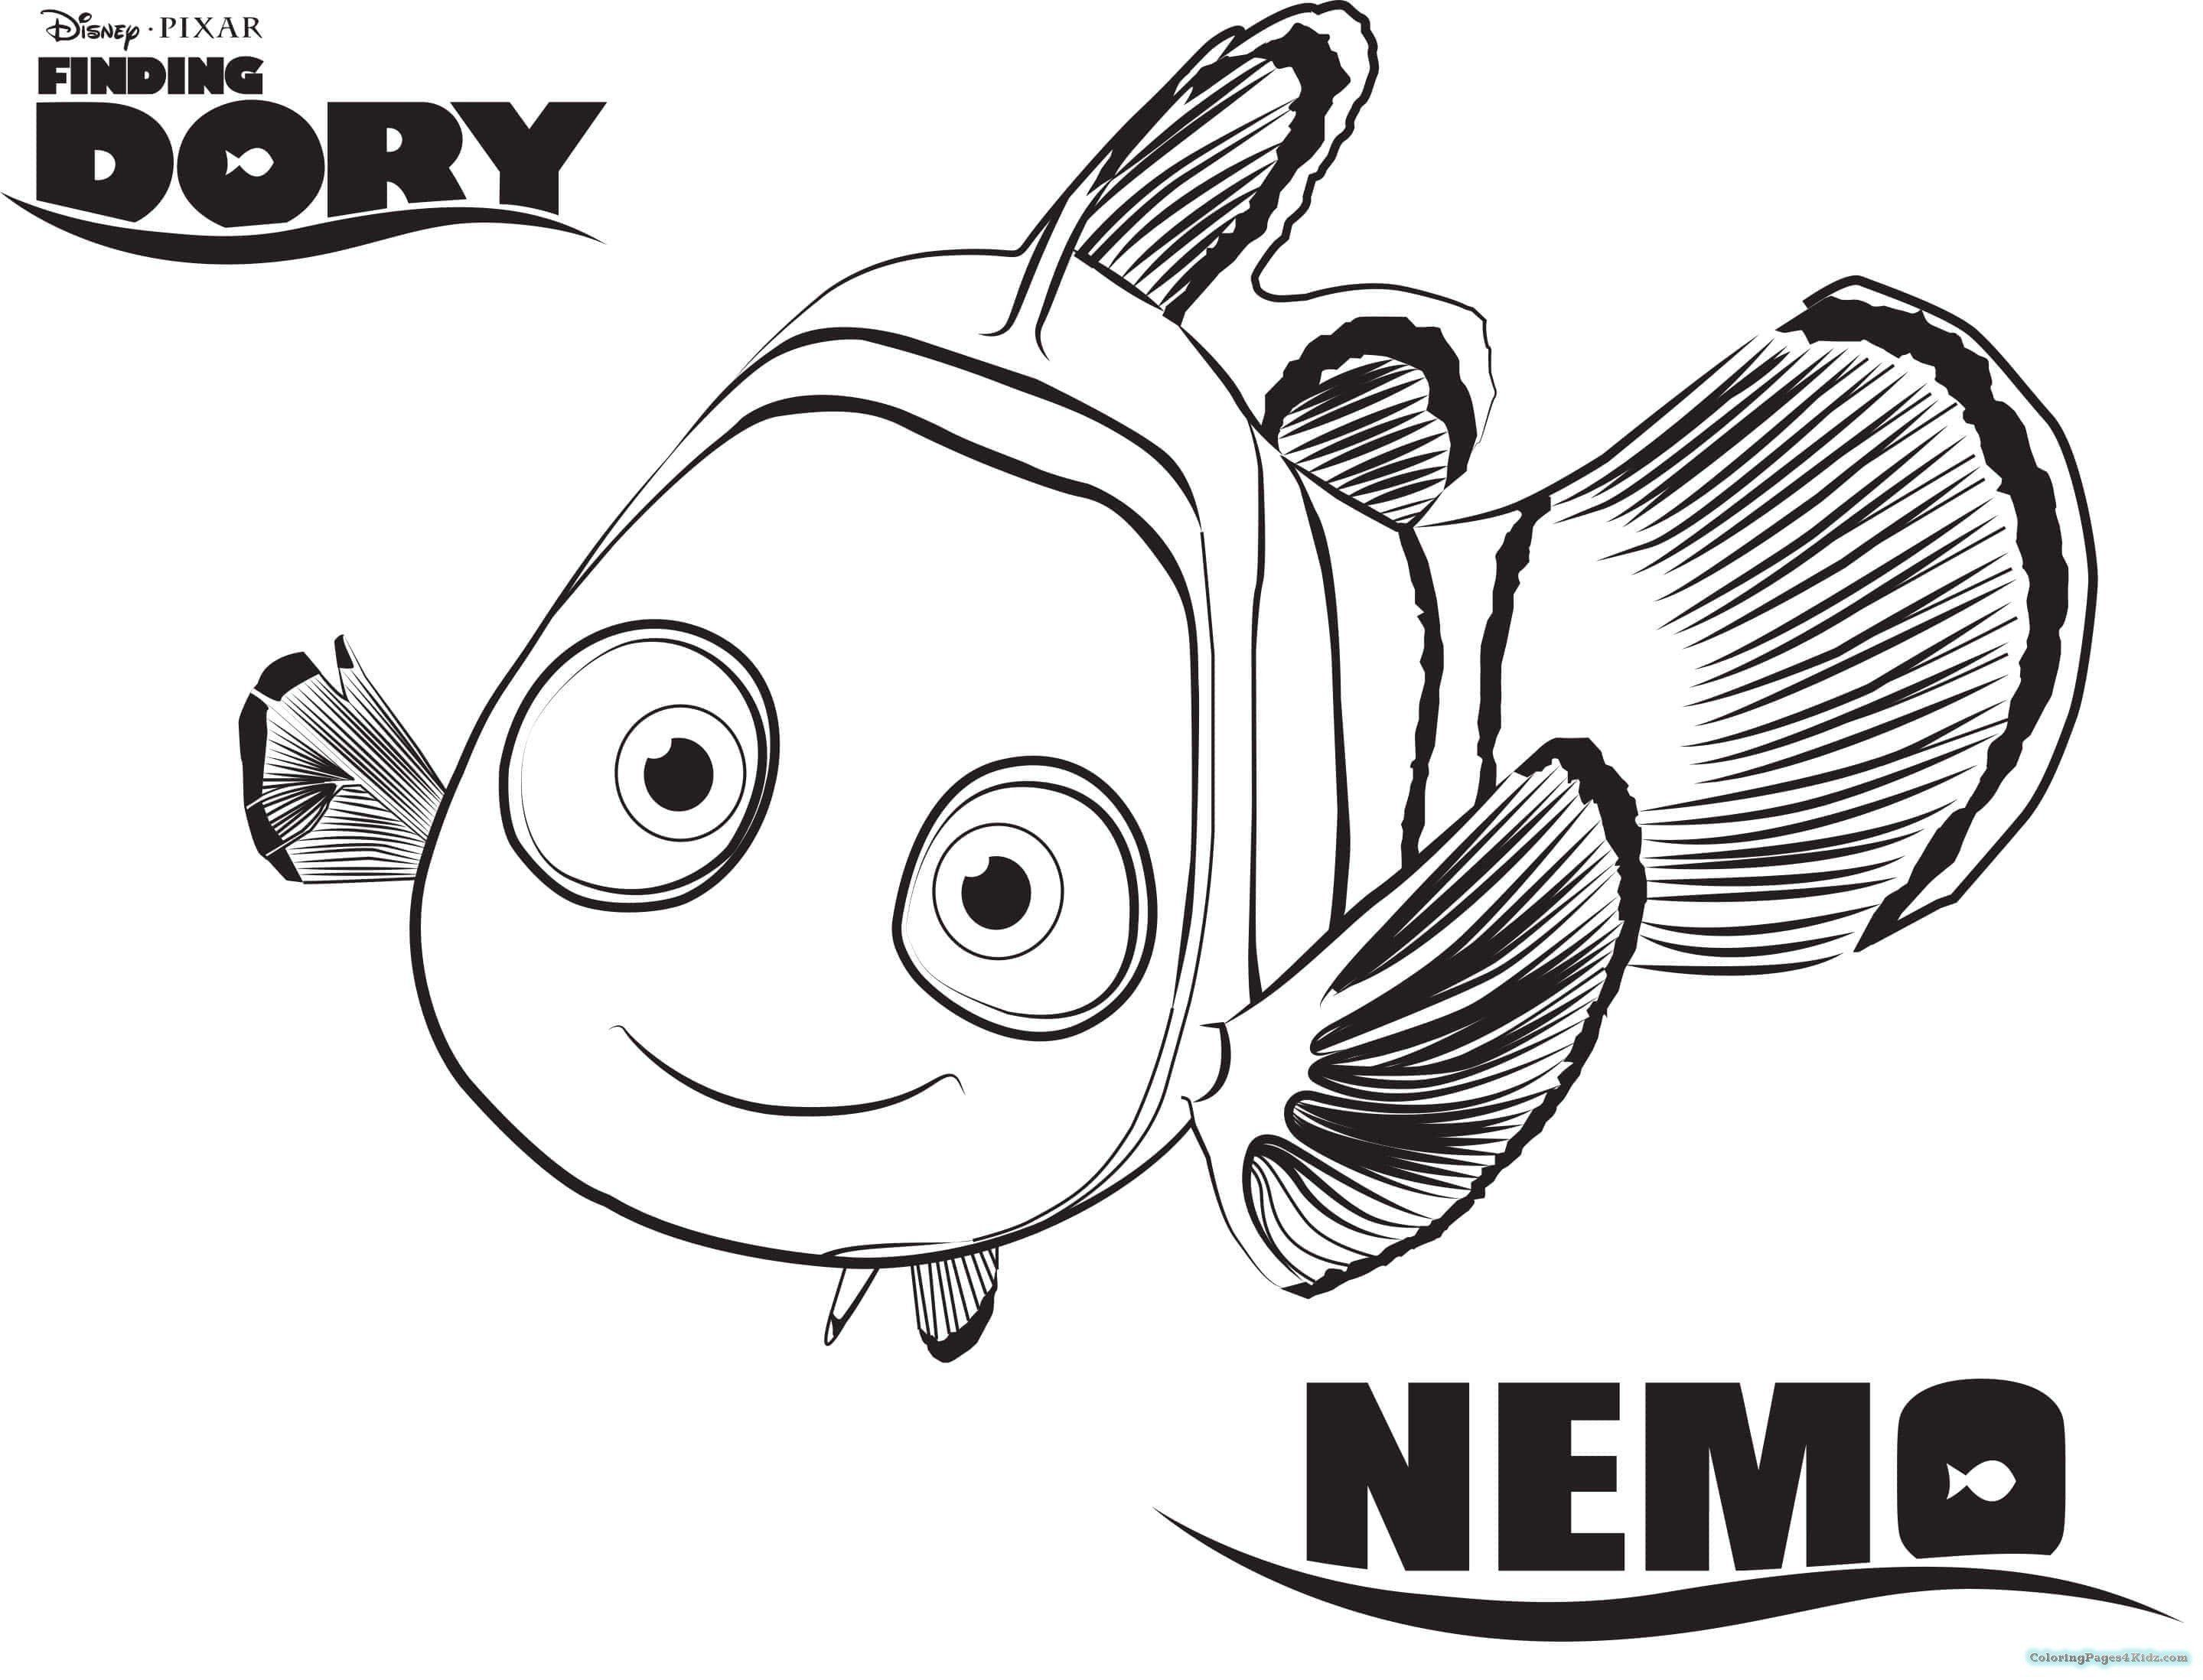 Finding Nemo Coloring Pages Luxury Finding Dory Coloring